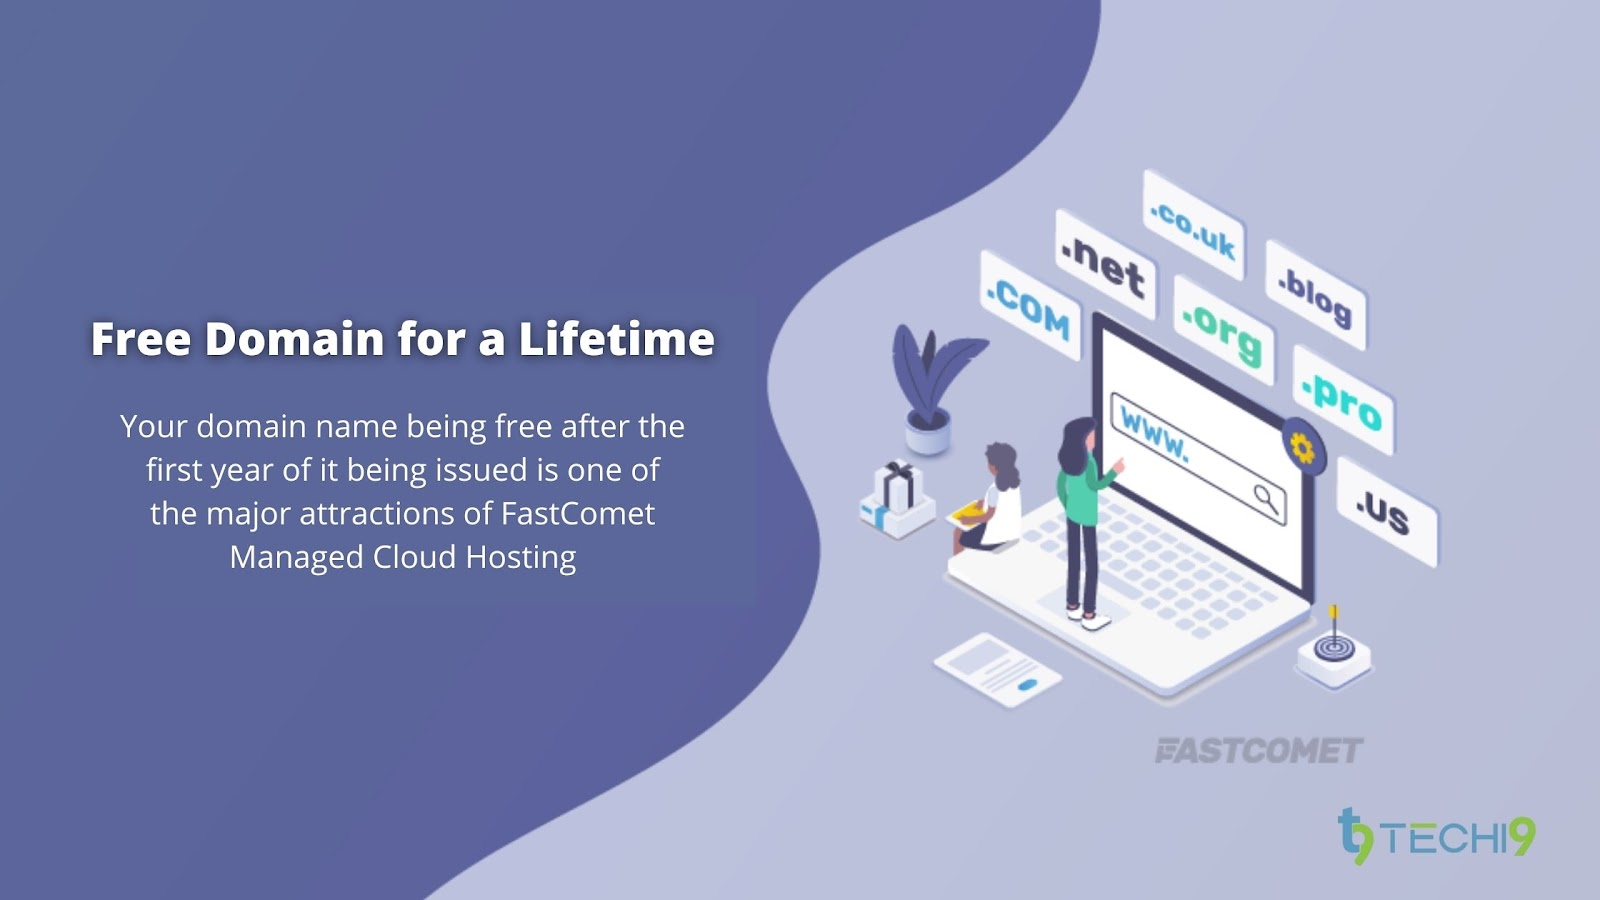 FastComet - Free Domain for a Lifetime